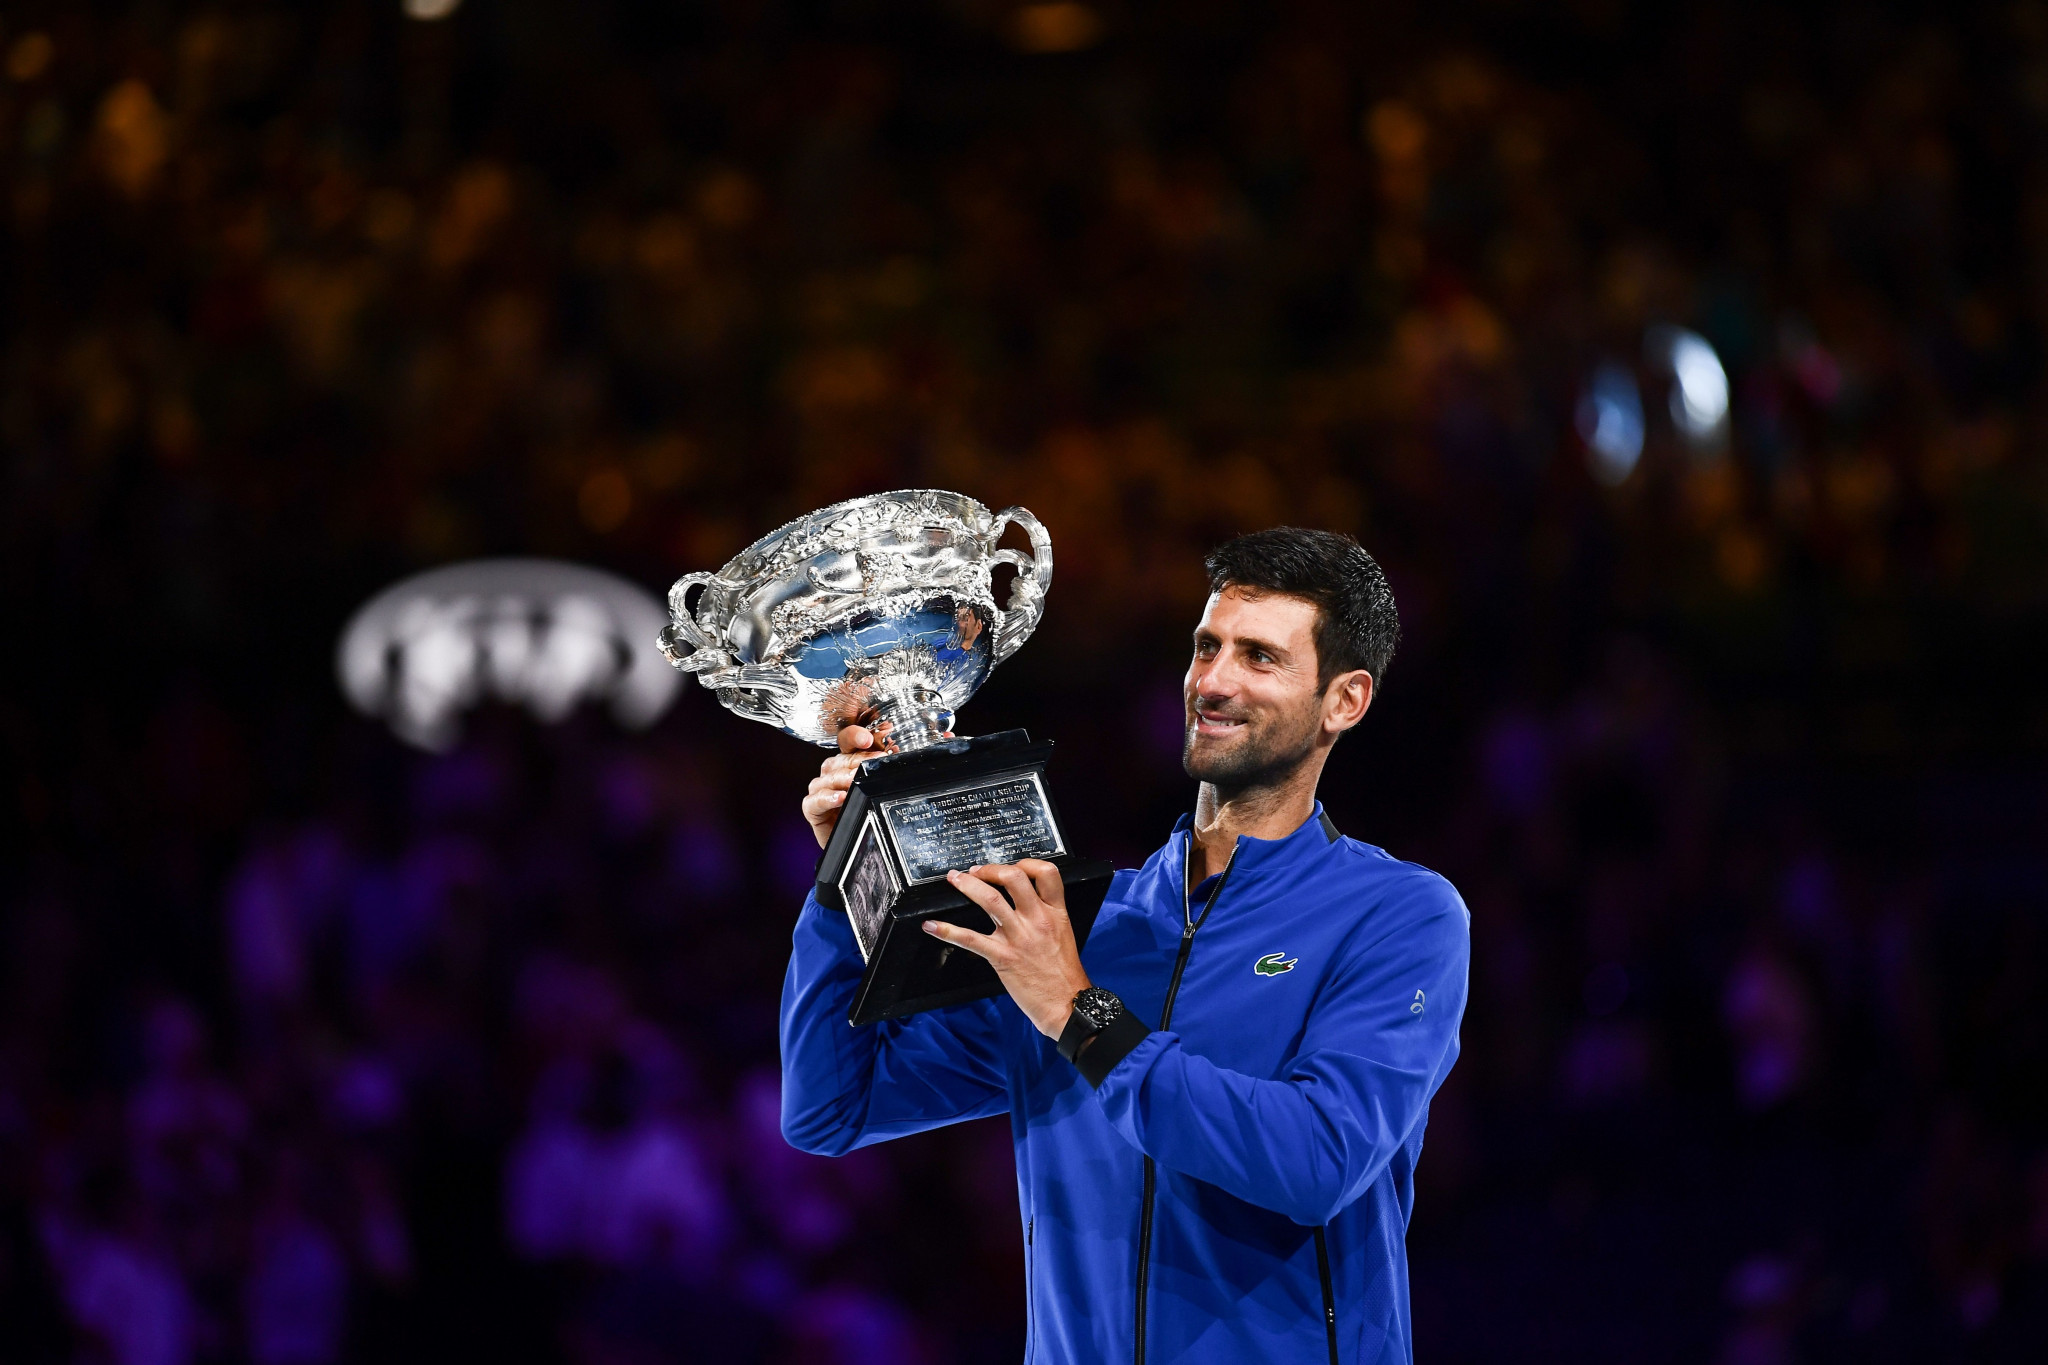 Nadal no match for Djokovic as Serbian claims seventh Australian Open crown